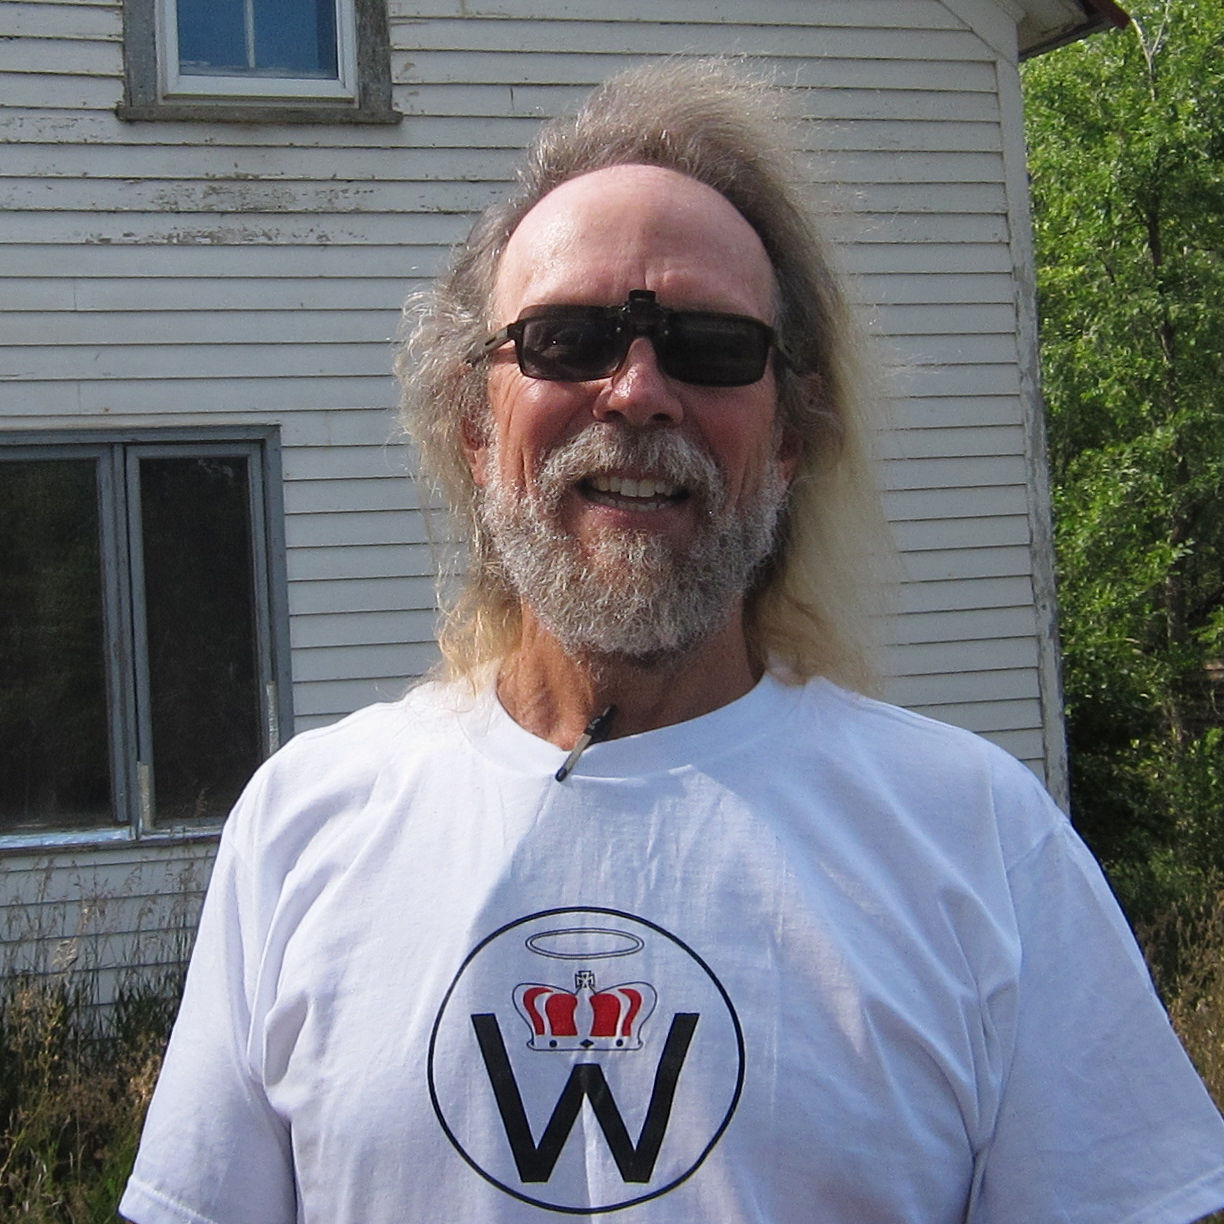 Craig Cobb has bought up property in tiny Leith, N.D., and started giving some away to white supremacist leaders.